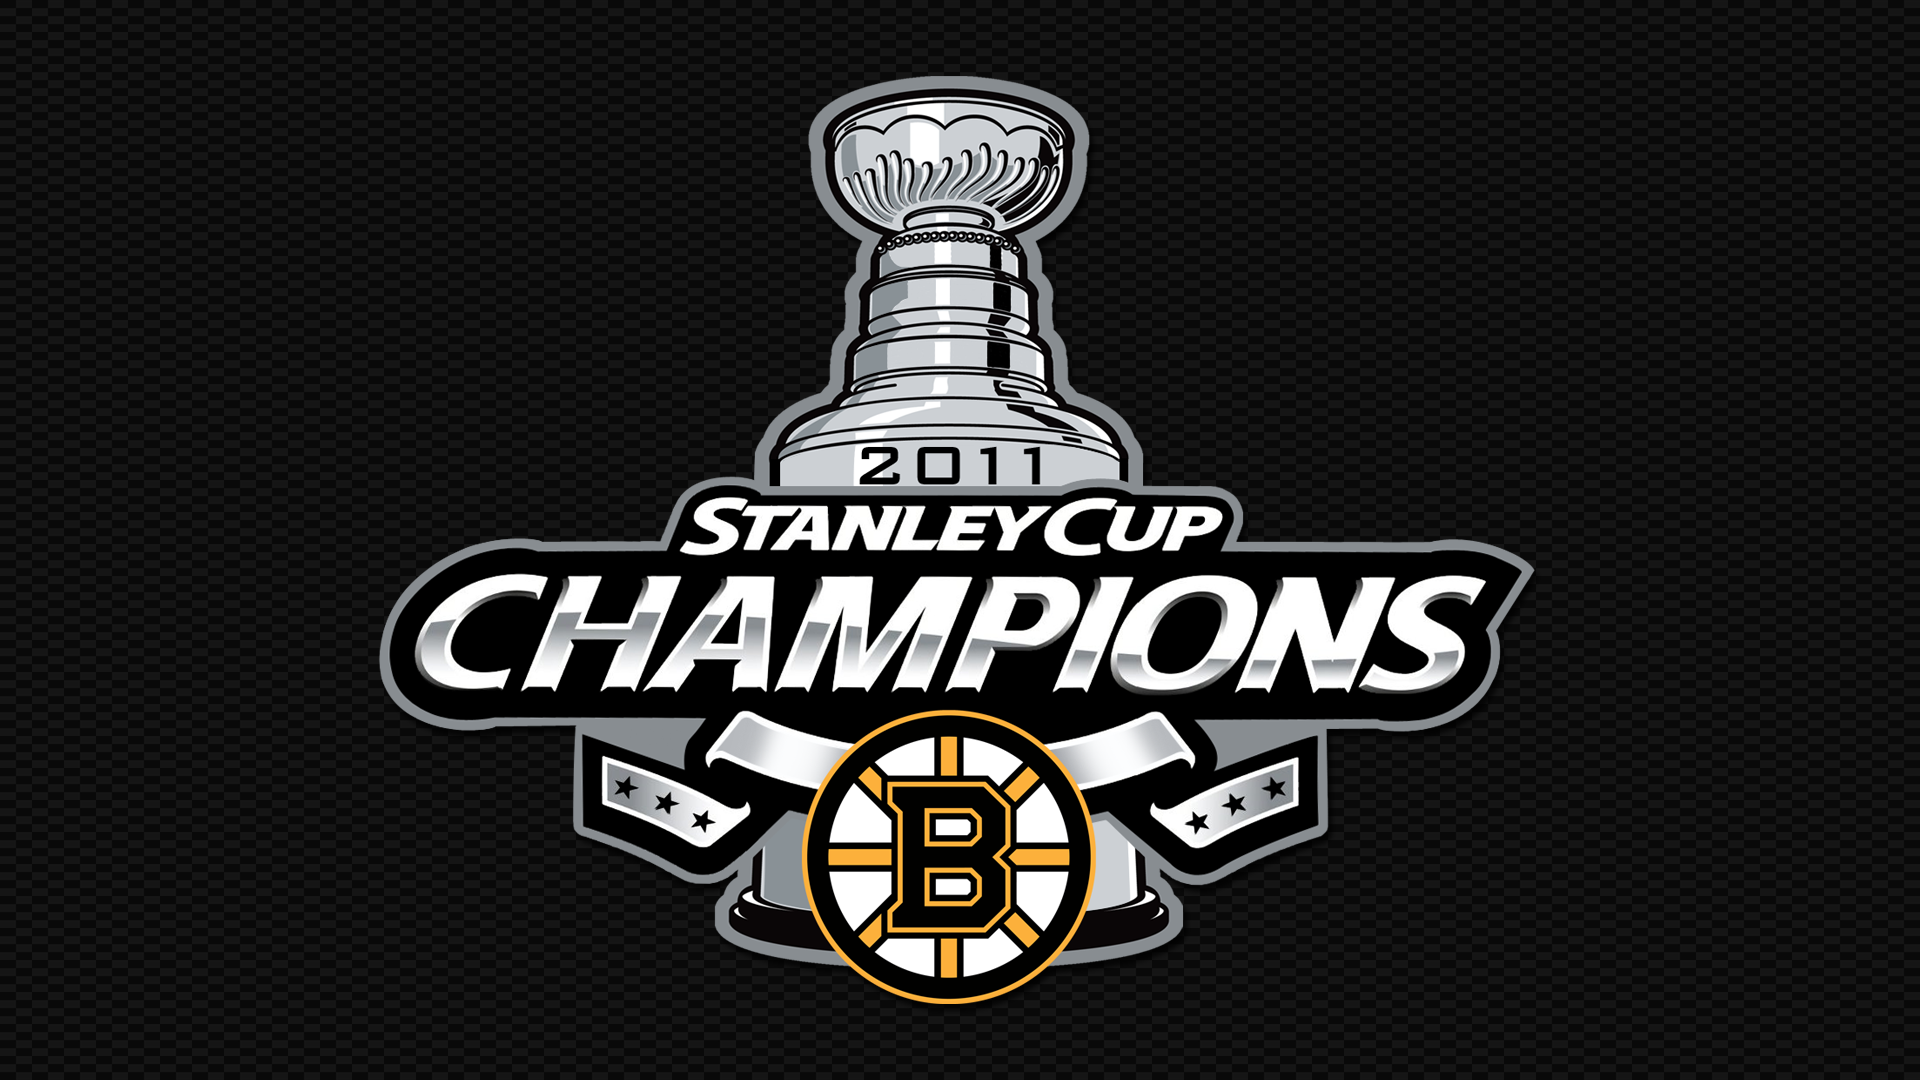 2011 Stanley Cup Champions 2 By Bruins4Life